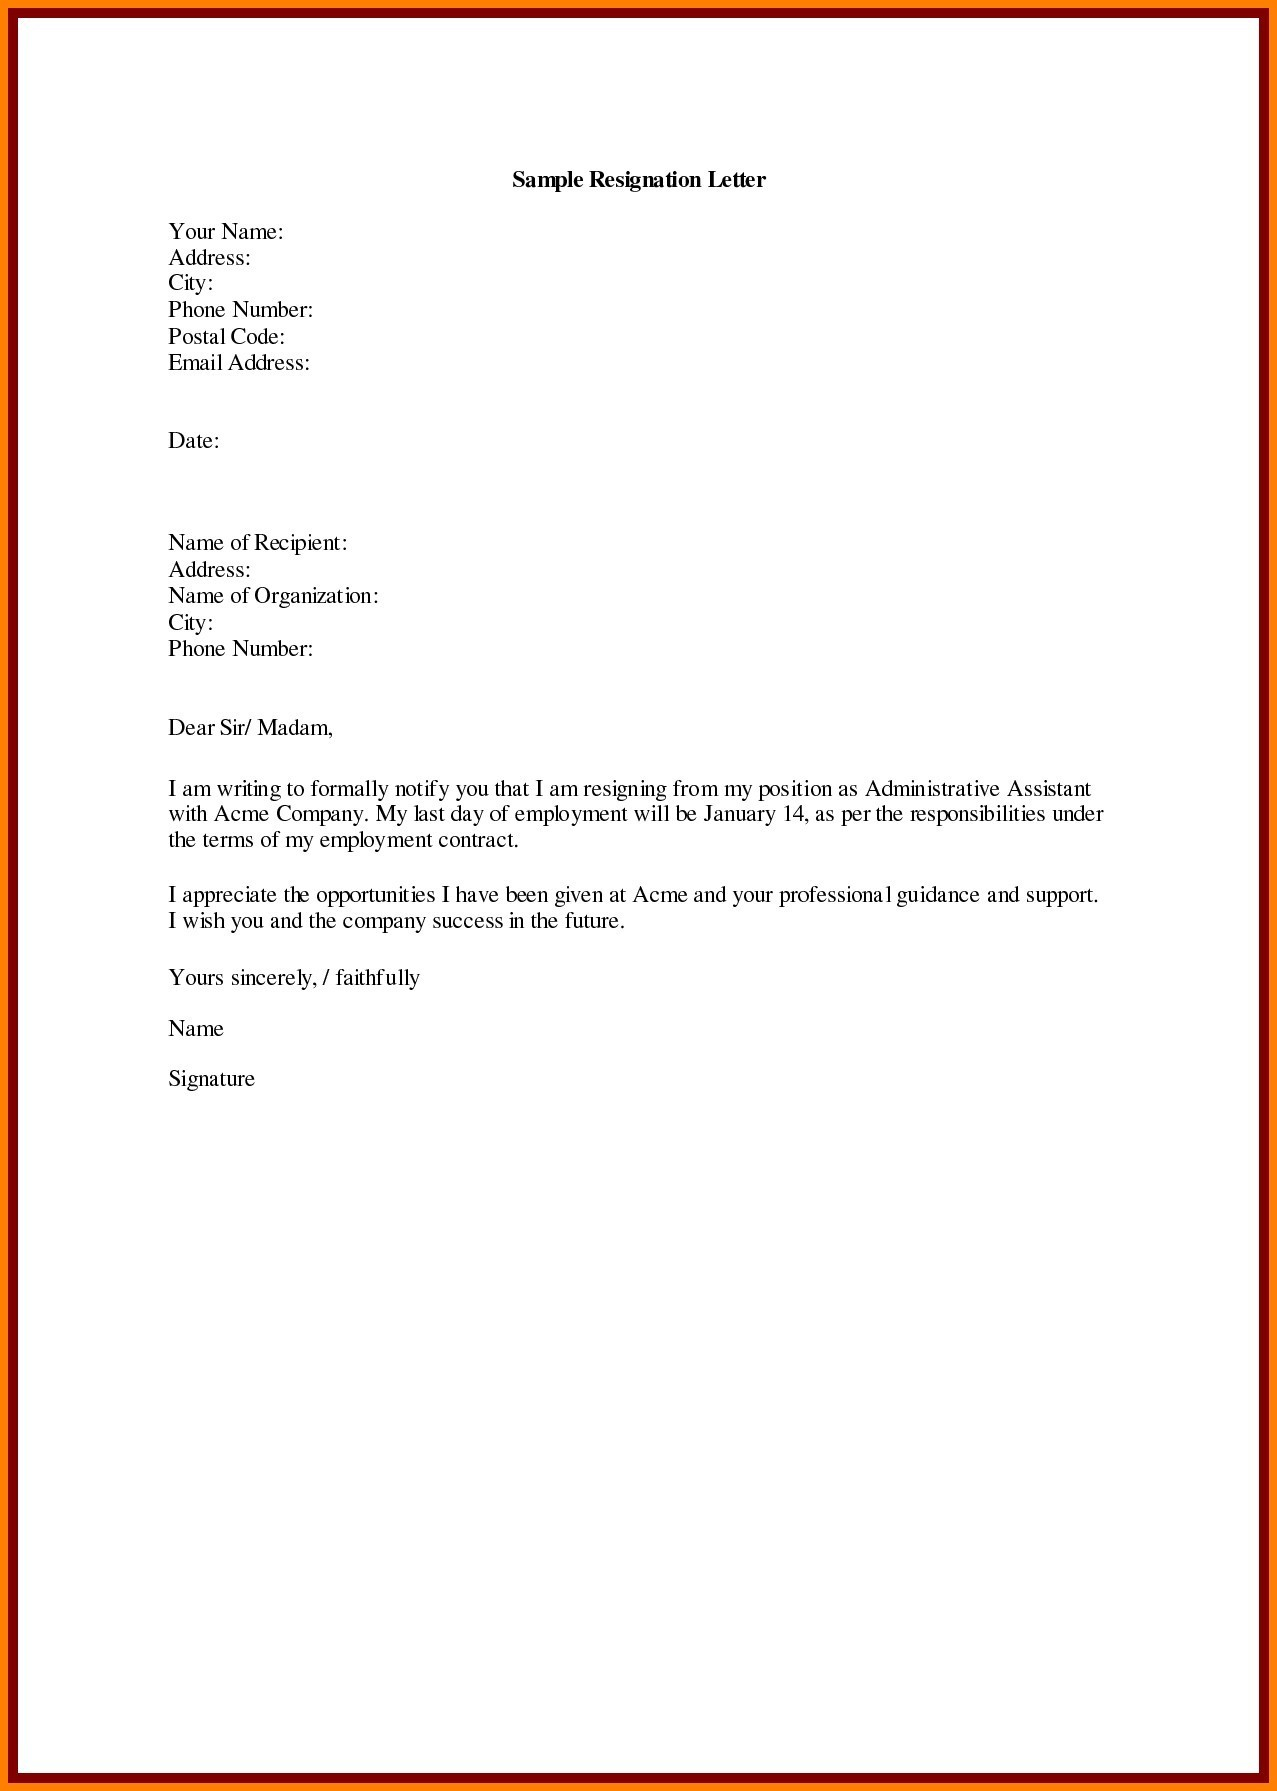 Writing A Resignation Letter Template - Sample Resignation Letter Template Doc Copy Samples Resignation